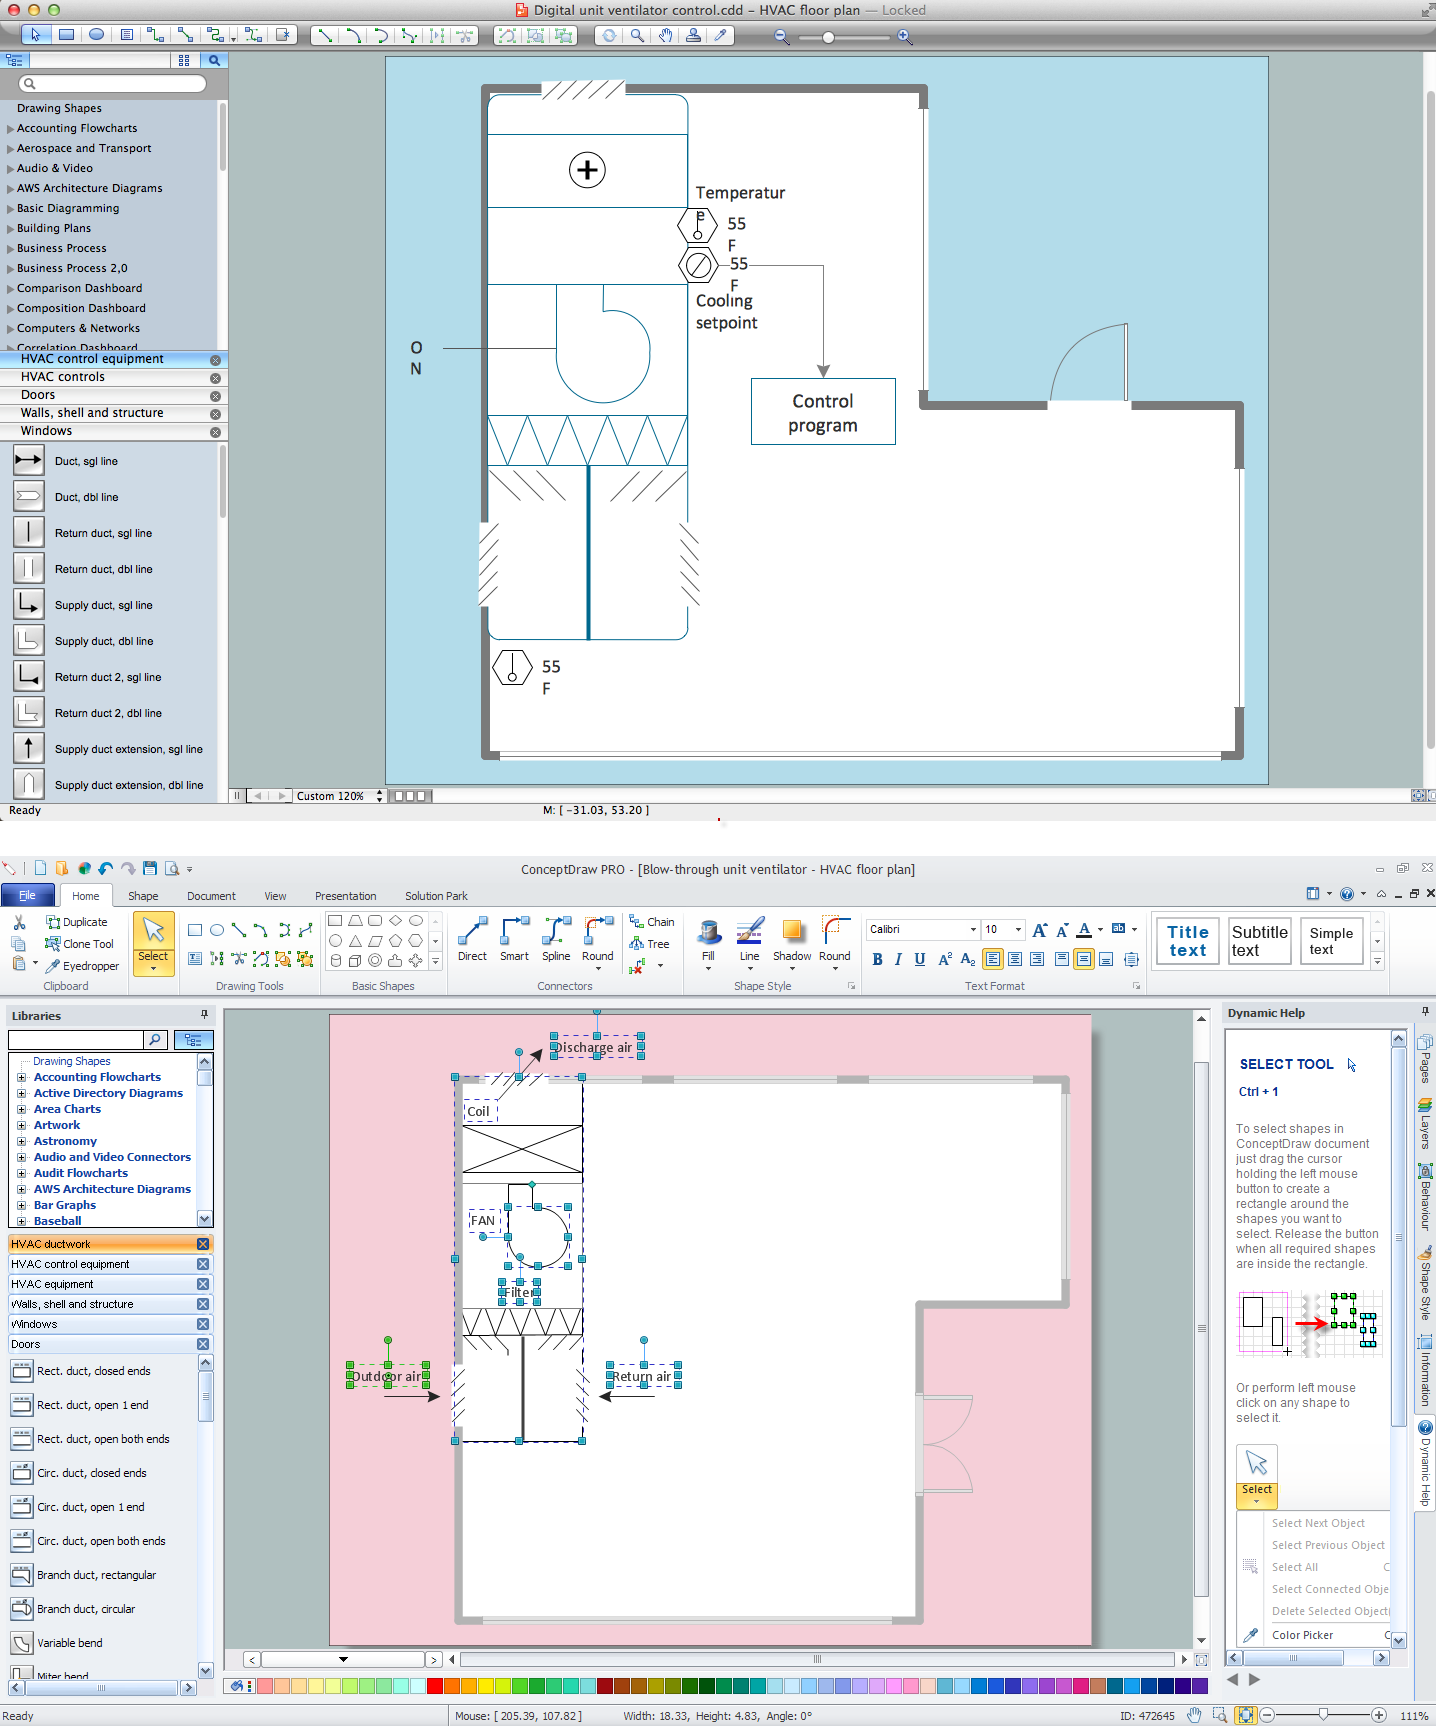 House Elrctrical Plan Software home wiring diagram creator home wiring diagrams instruction wiring diagram freeware at gsmx.co